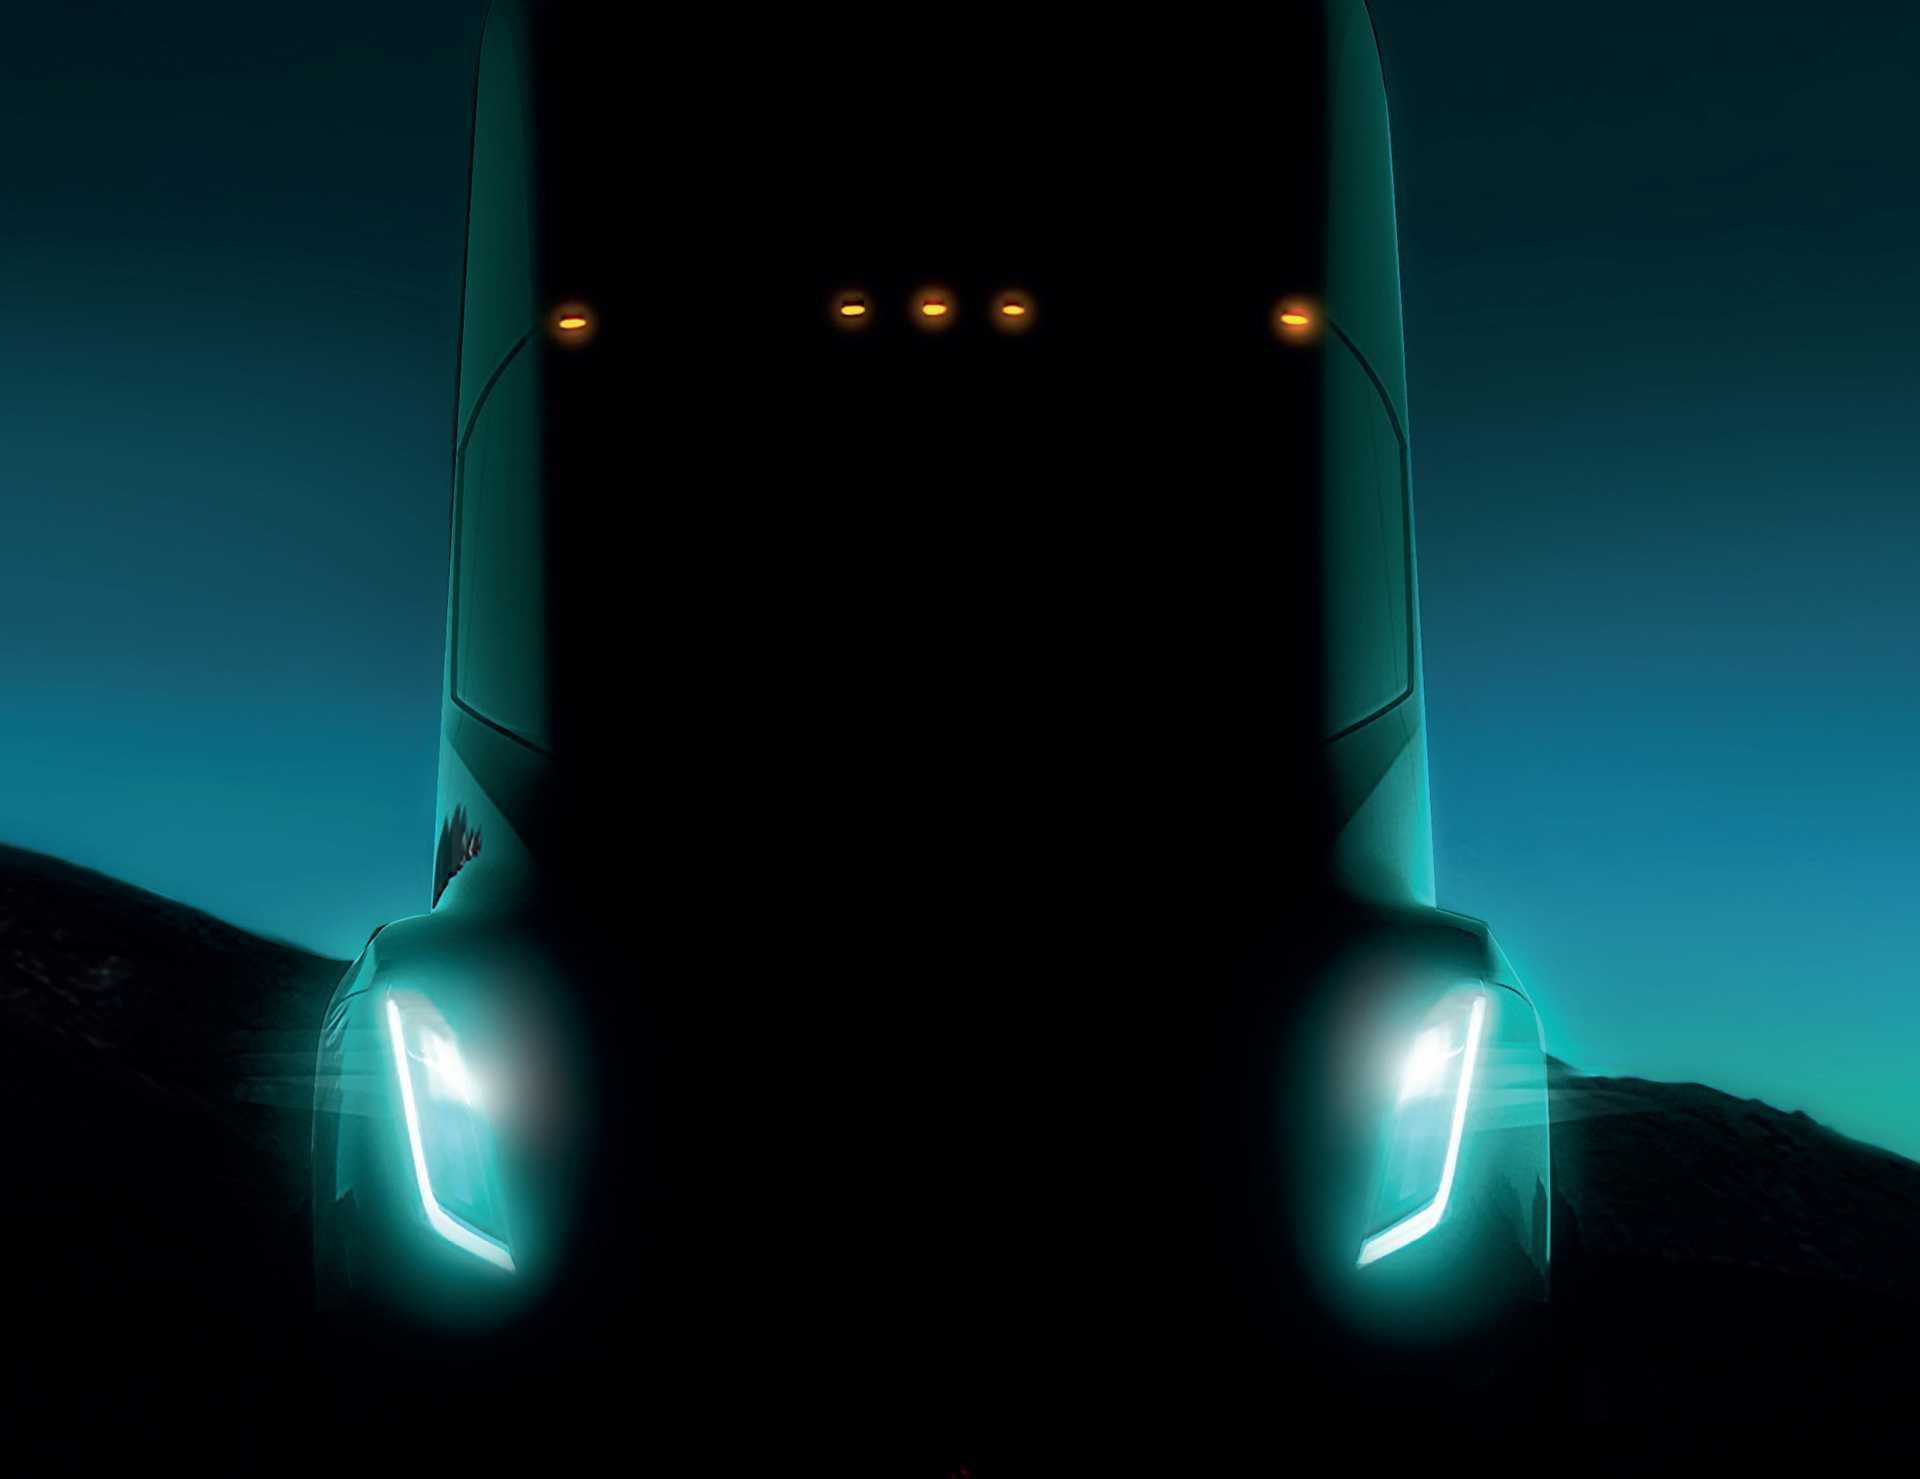 Carmakers face challenges across the board, coming at them like an electric juggernaut. This is the Tesla Semi, an electric lorry.